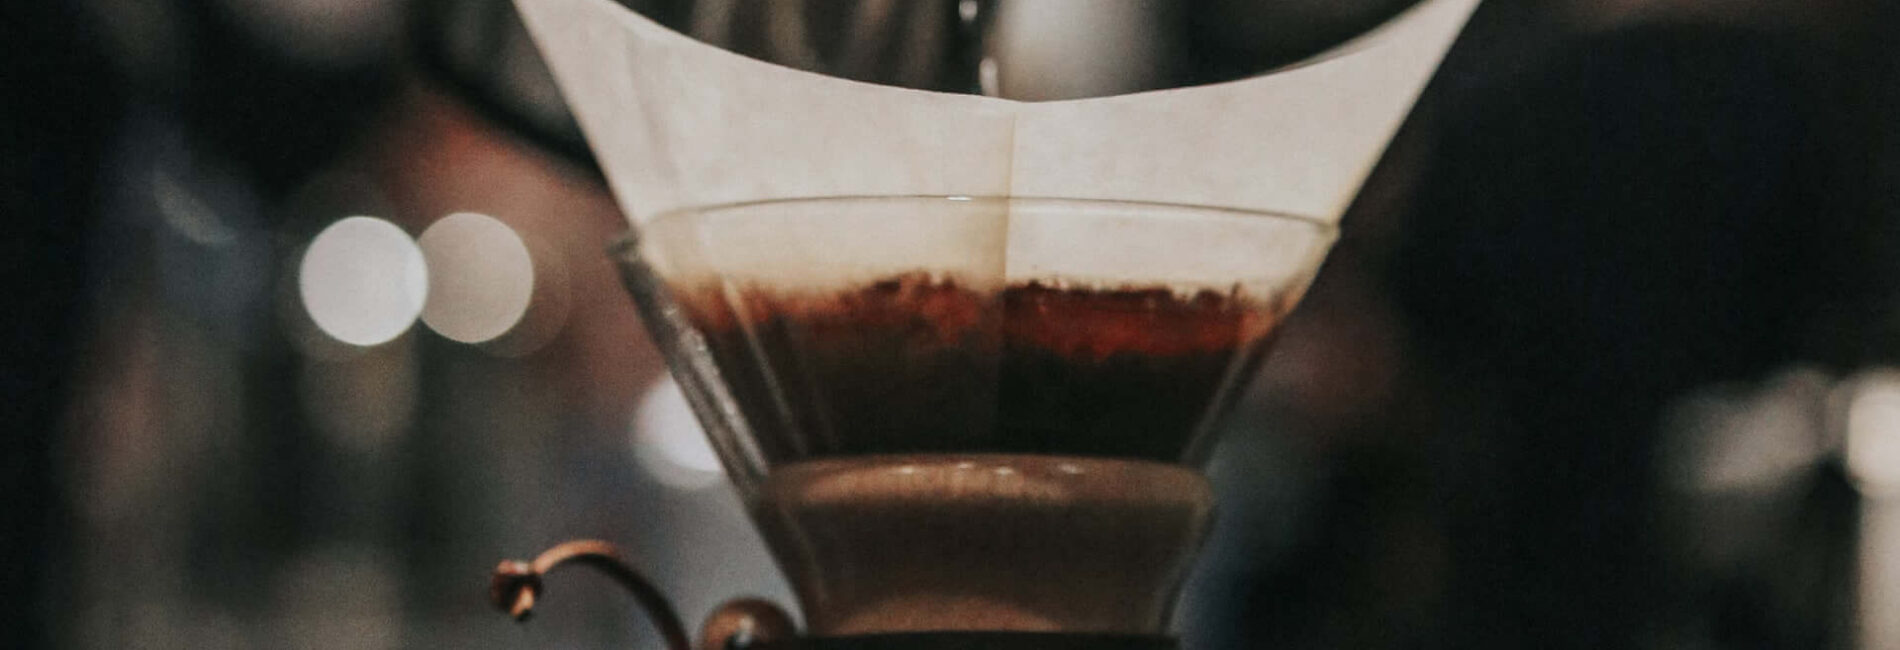 15 Unusual Uses for Coffee Filters